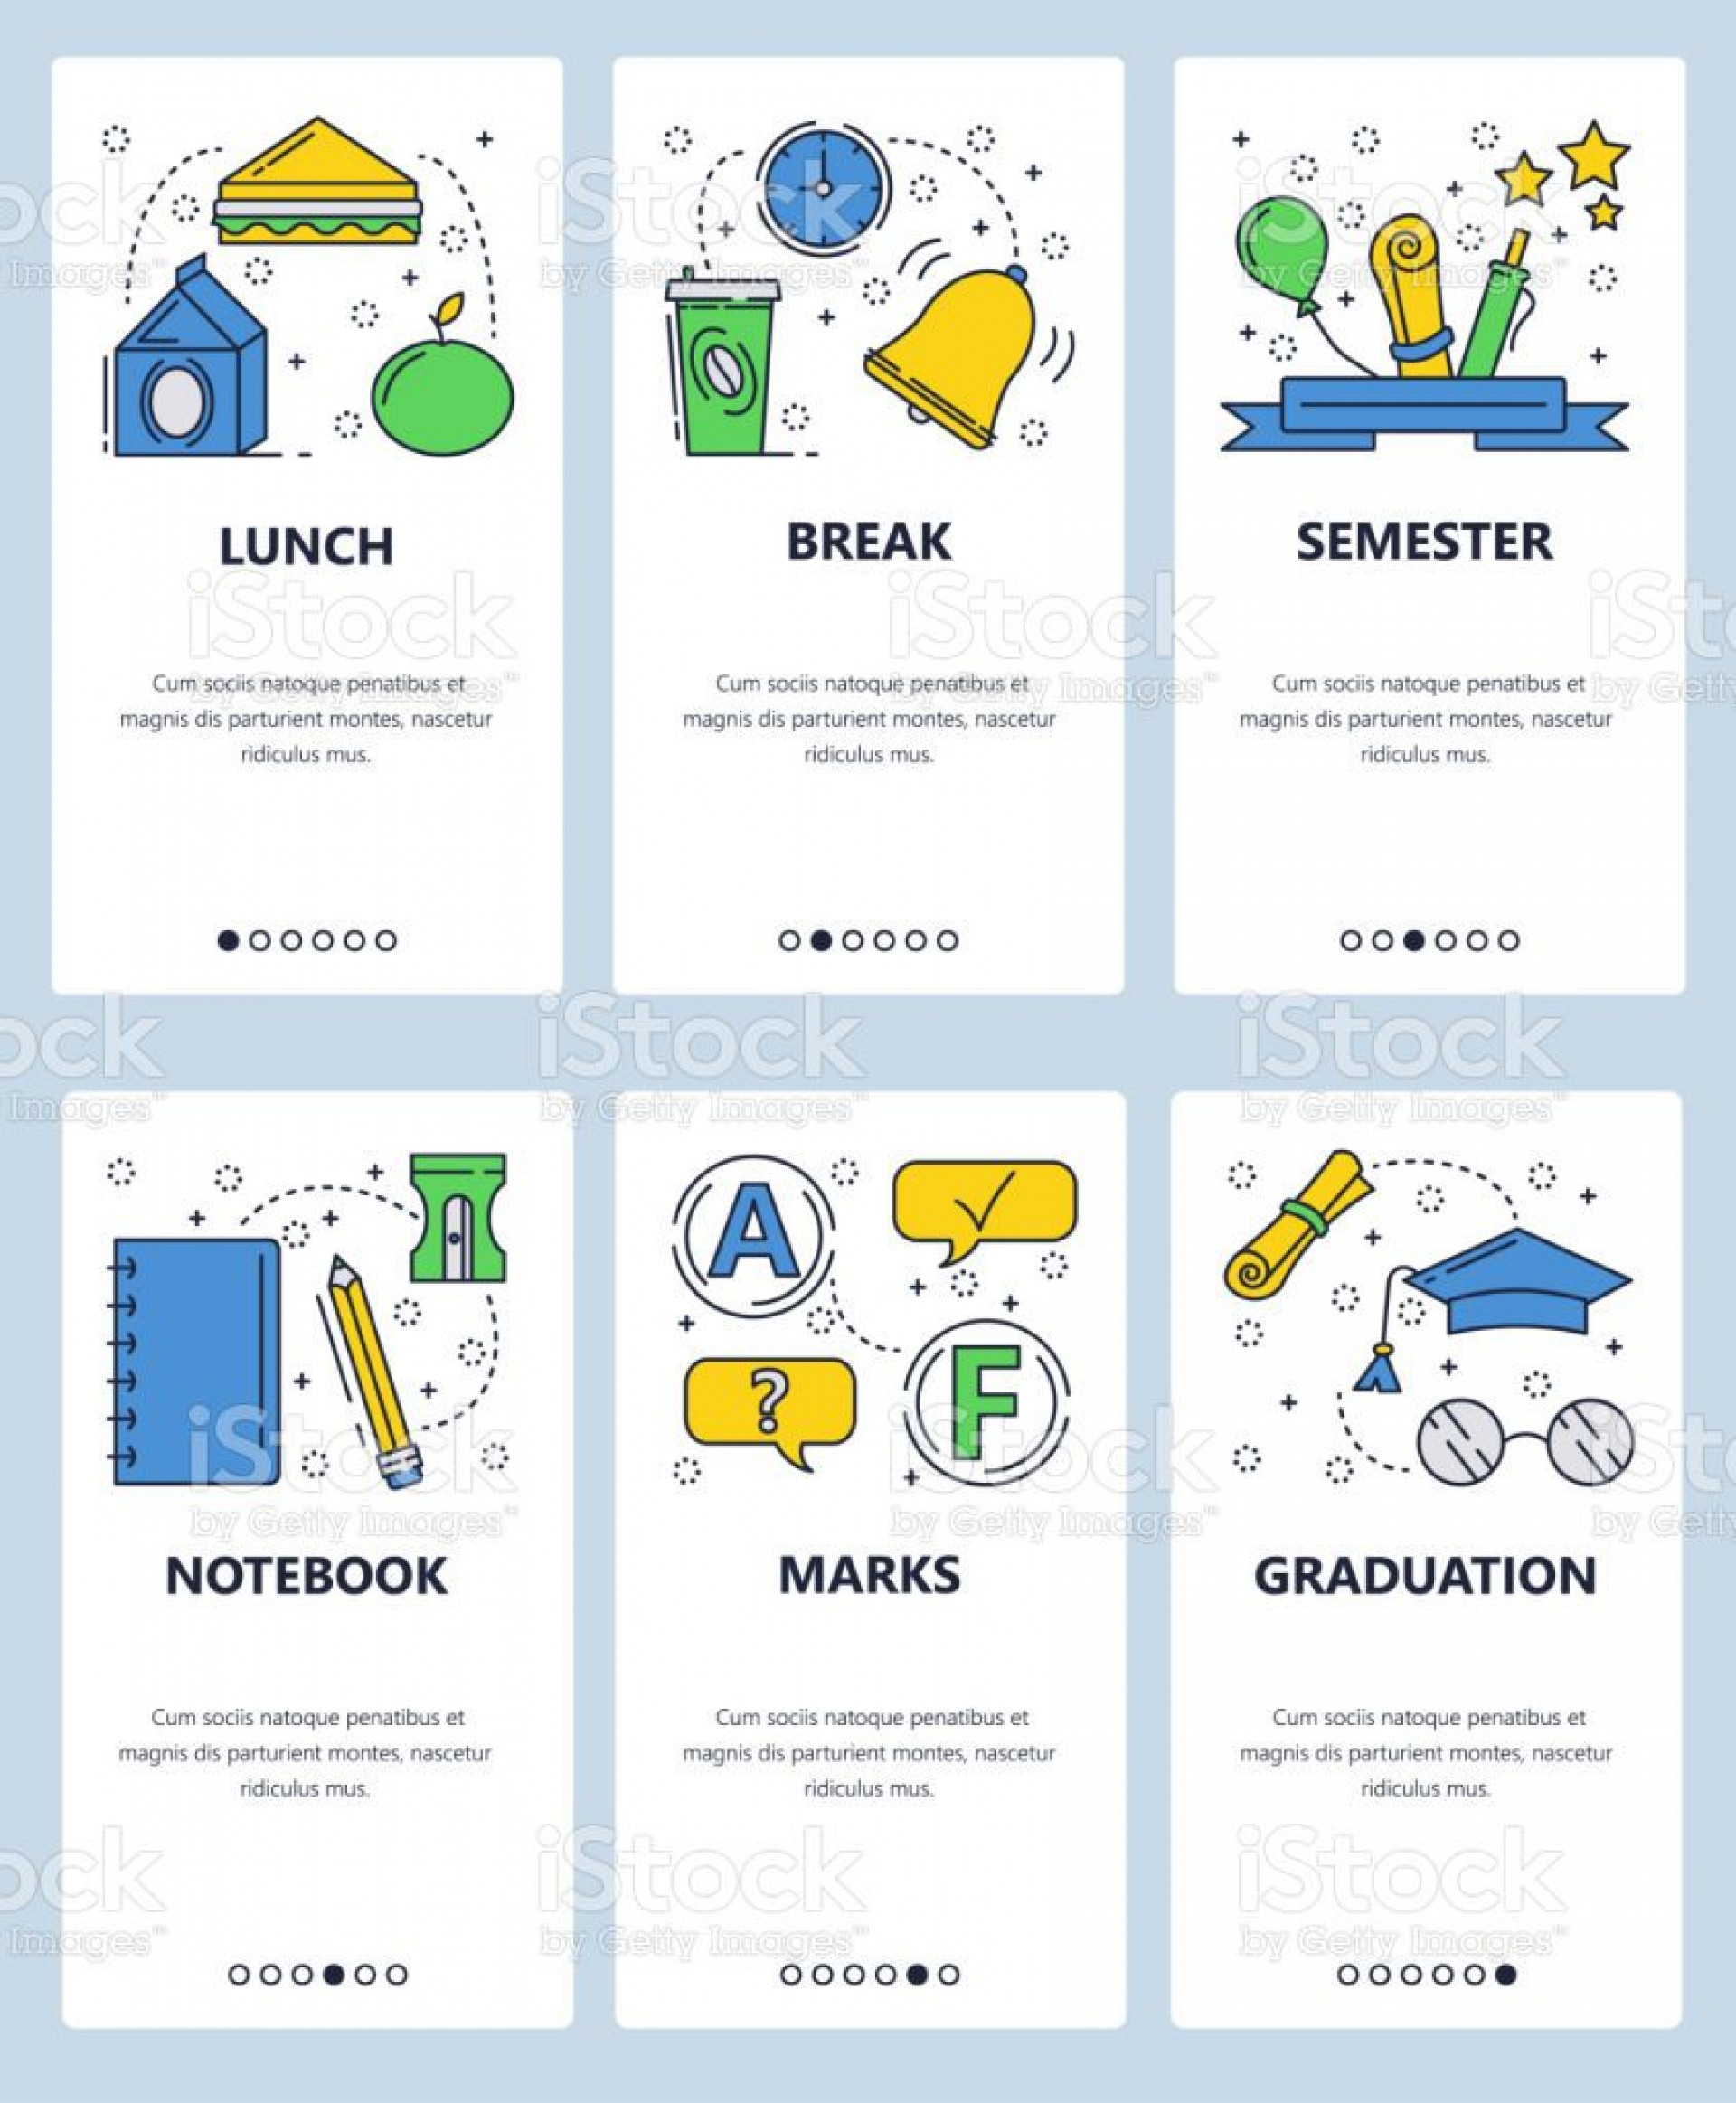 004 Awful School Lunch Menu Template Example  Monthly Free Printable Blank1920